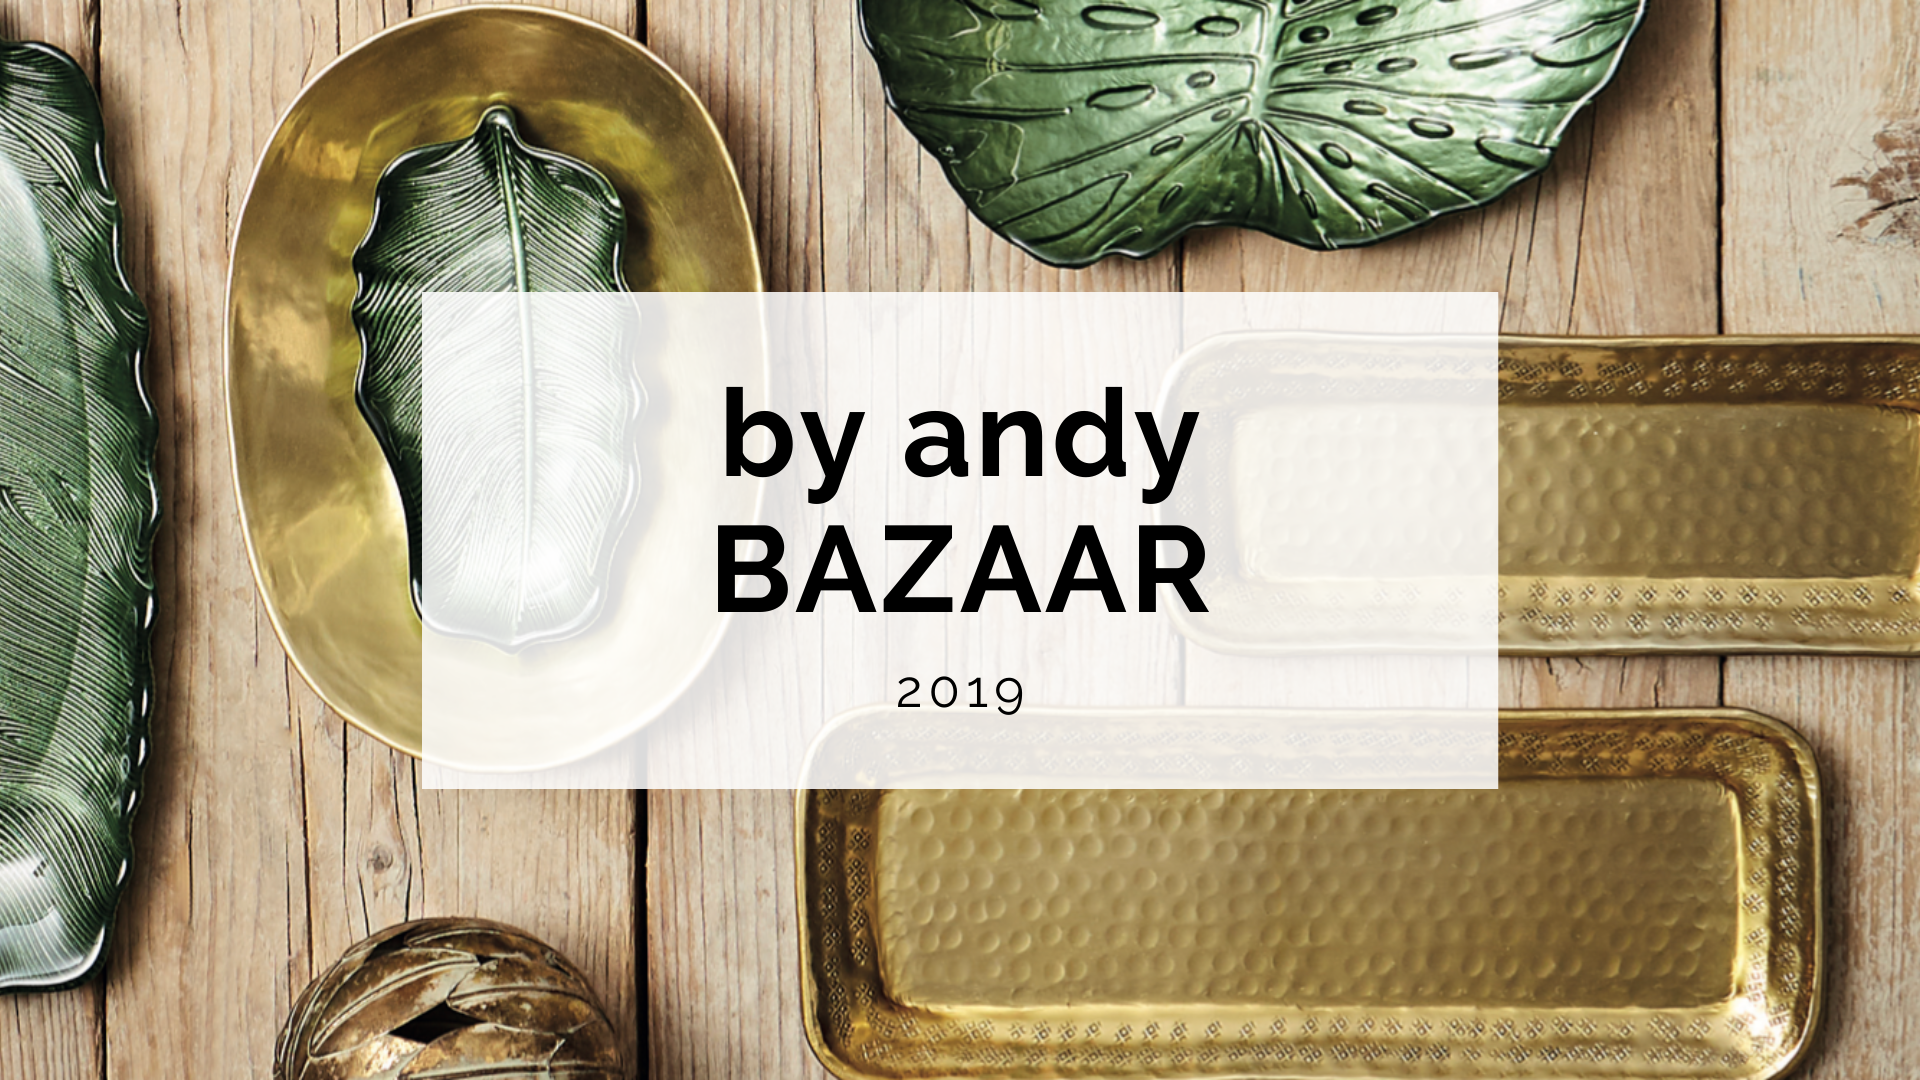 by andy BAZAAR 2019 | by andy - for better moods